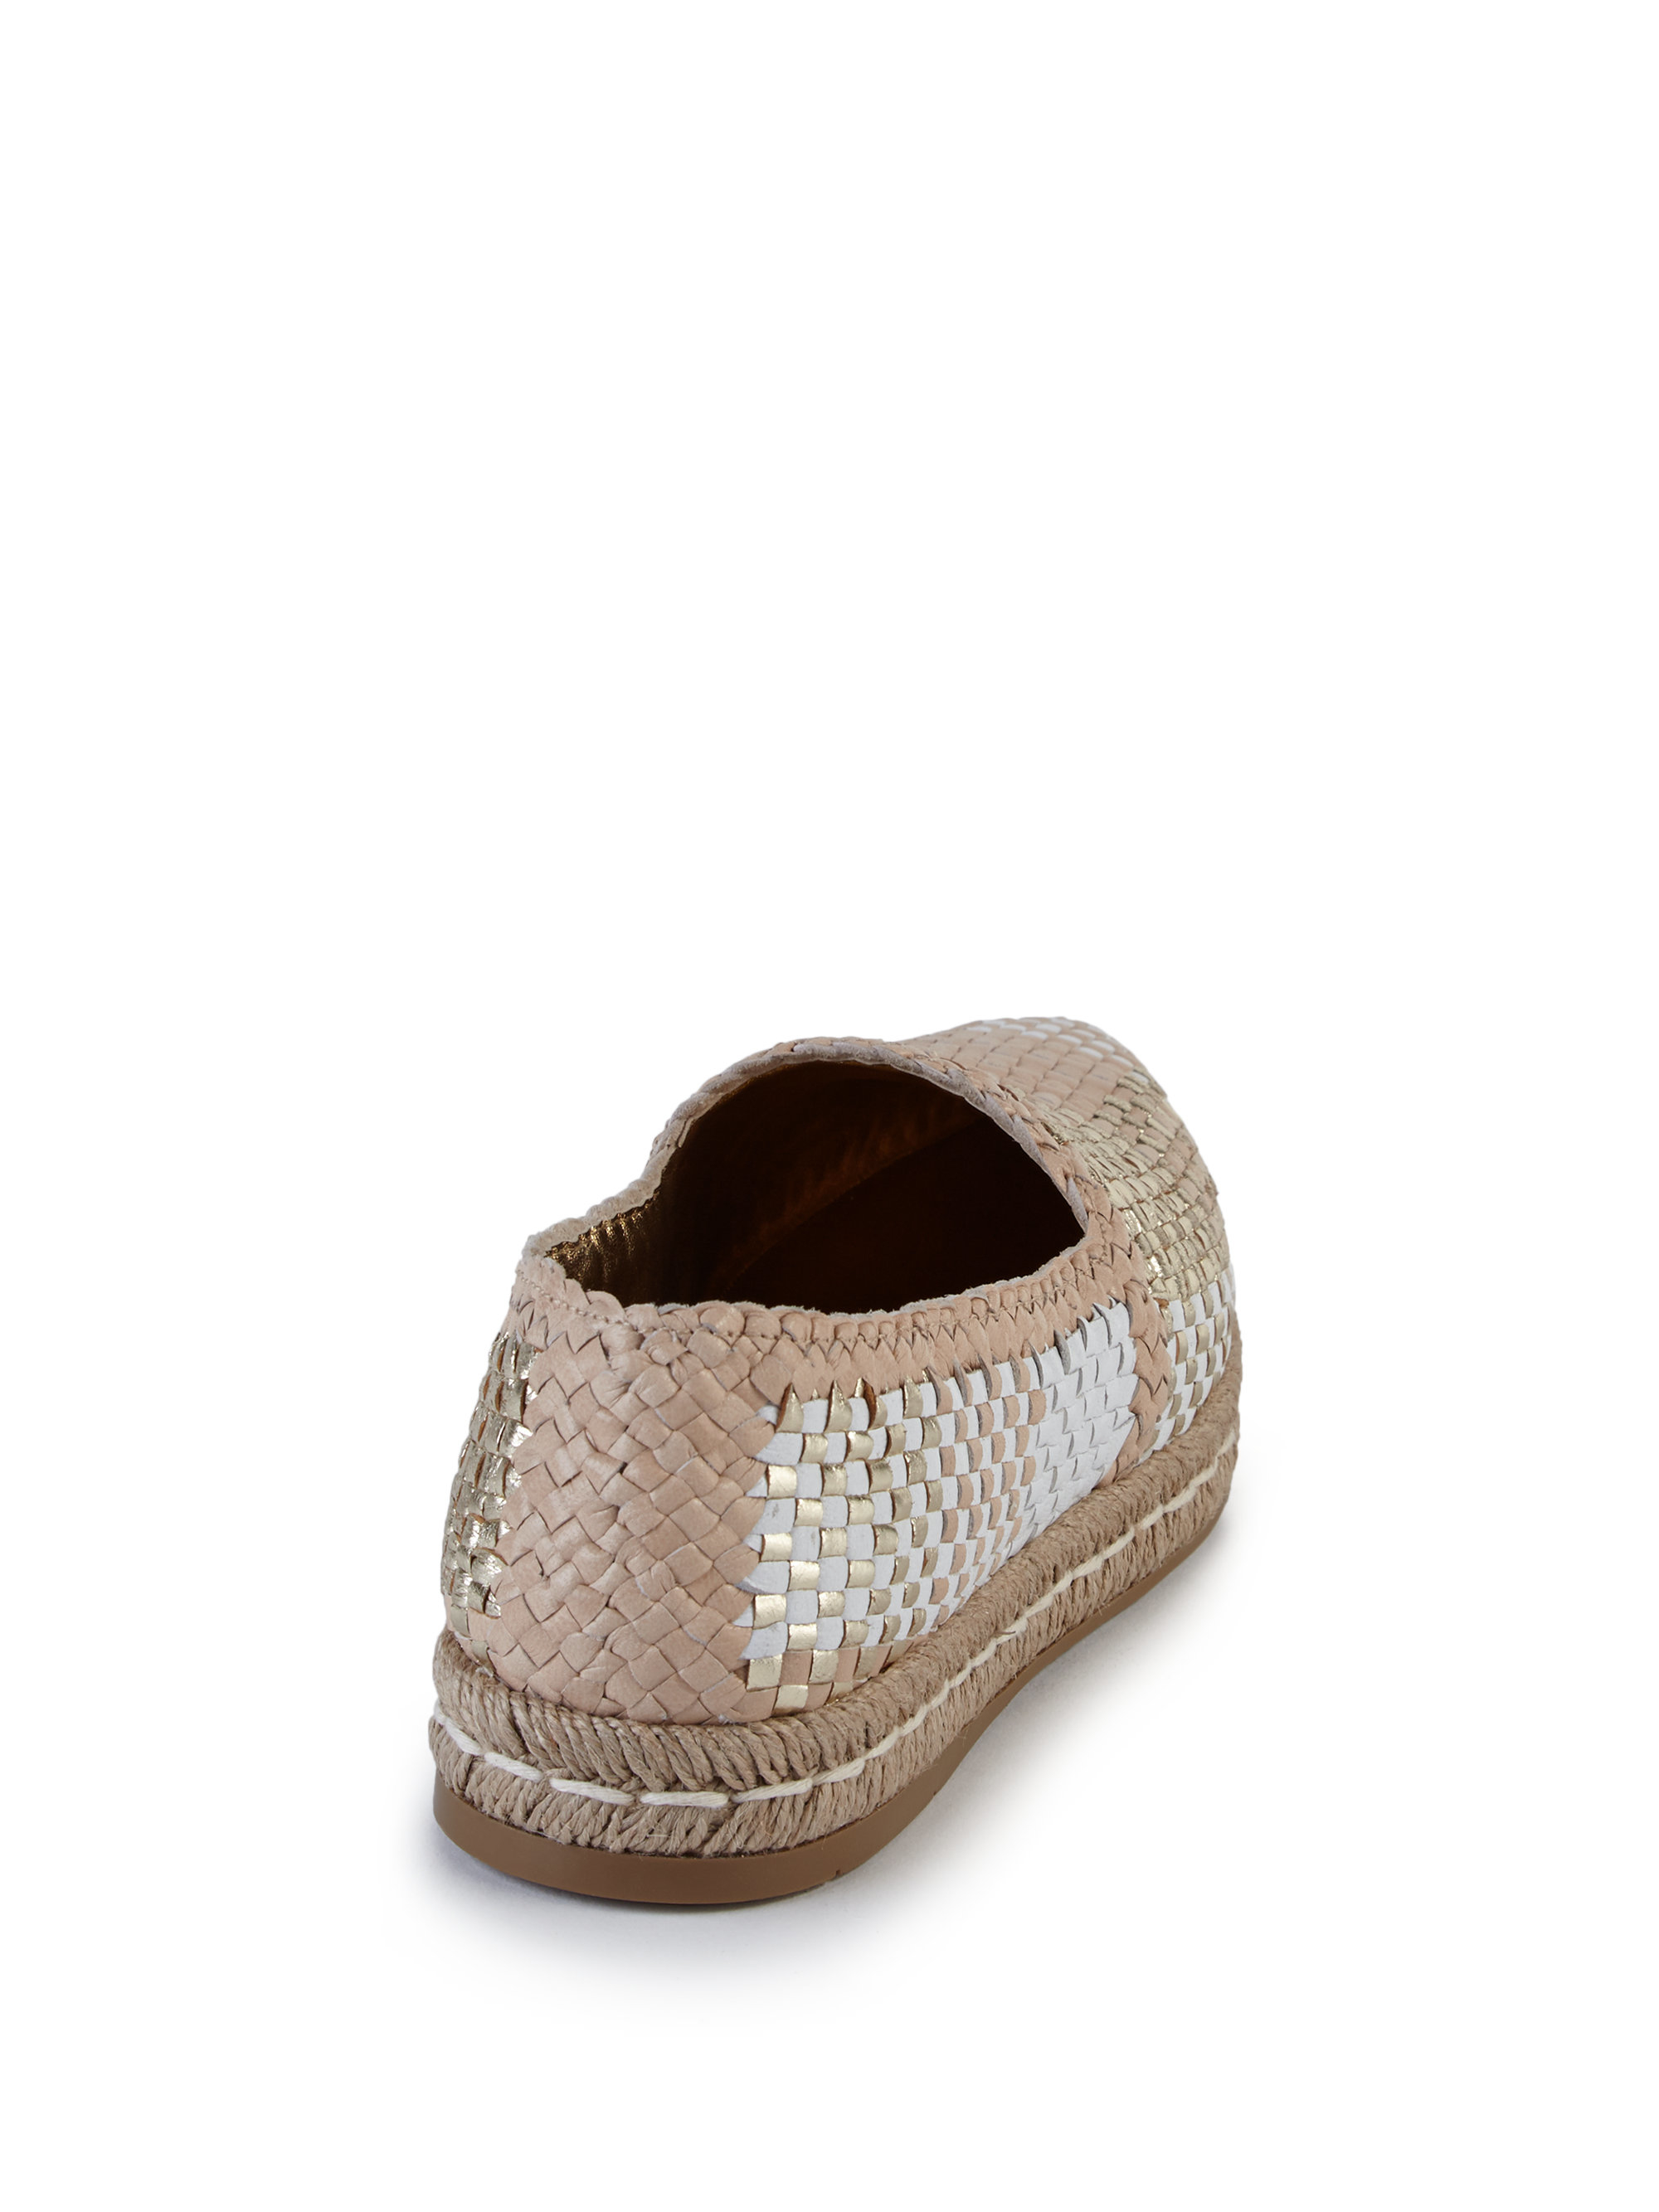 Prada Woven Espadrille Oxfords discount purchase outlet pick a best cheap lowest price cheap sale choice HjiKxM9Sg